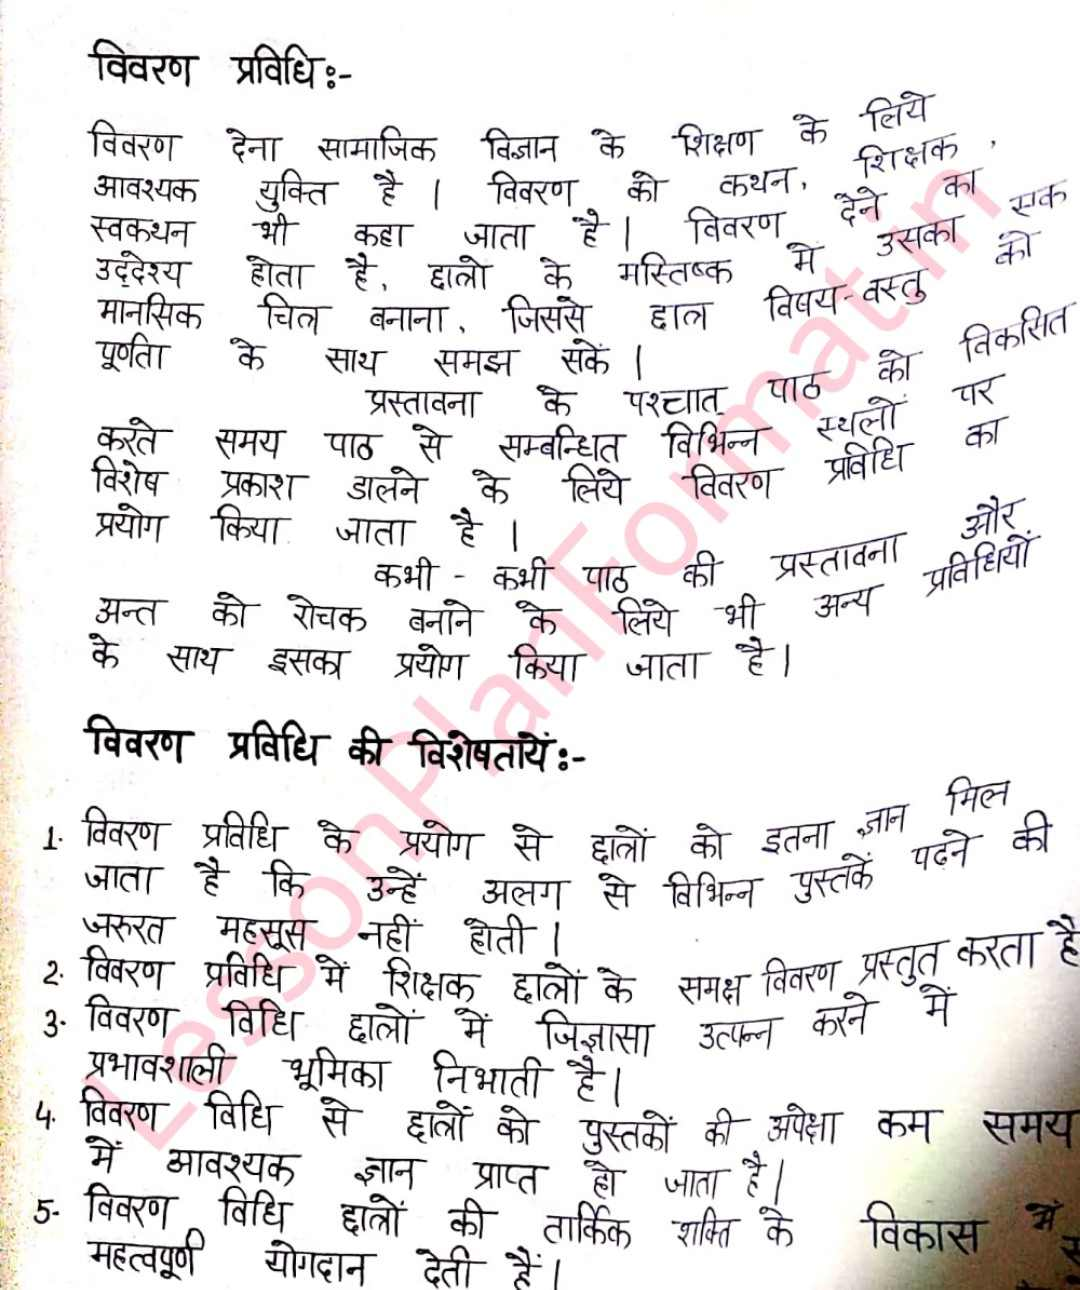 Upcharatmak Shikshan in Hindi